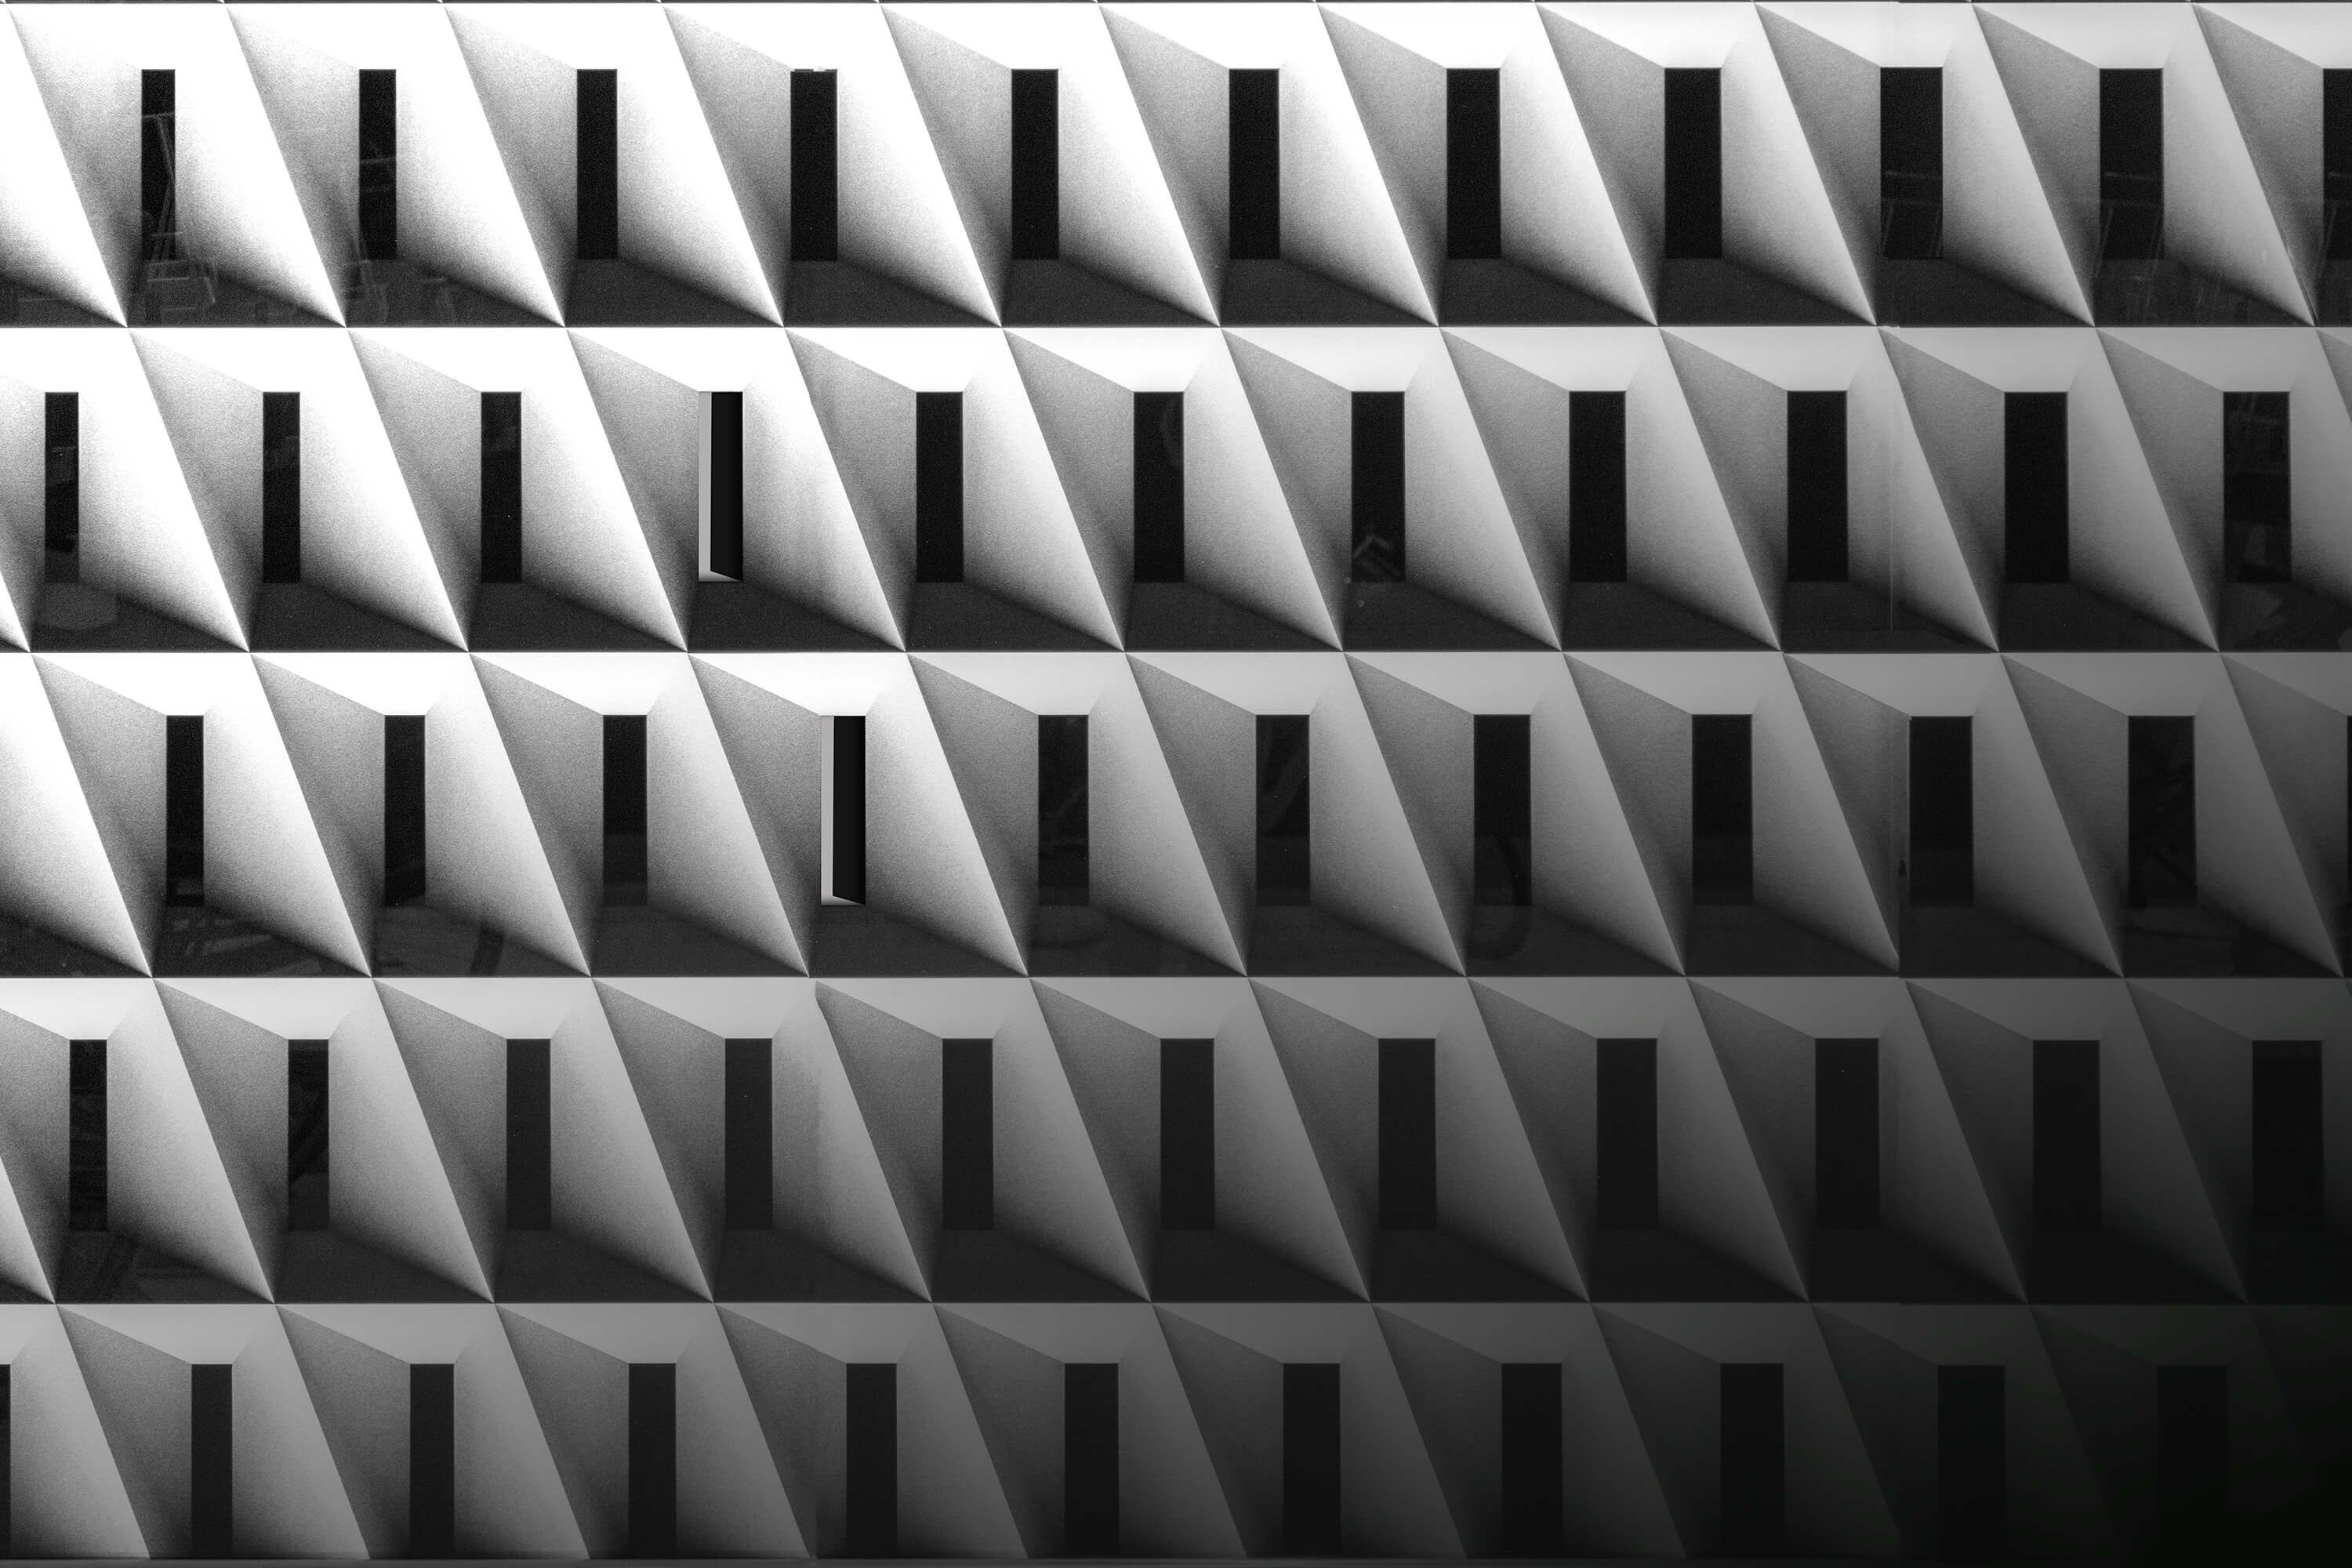 Abstract Wall structure